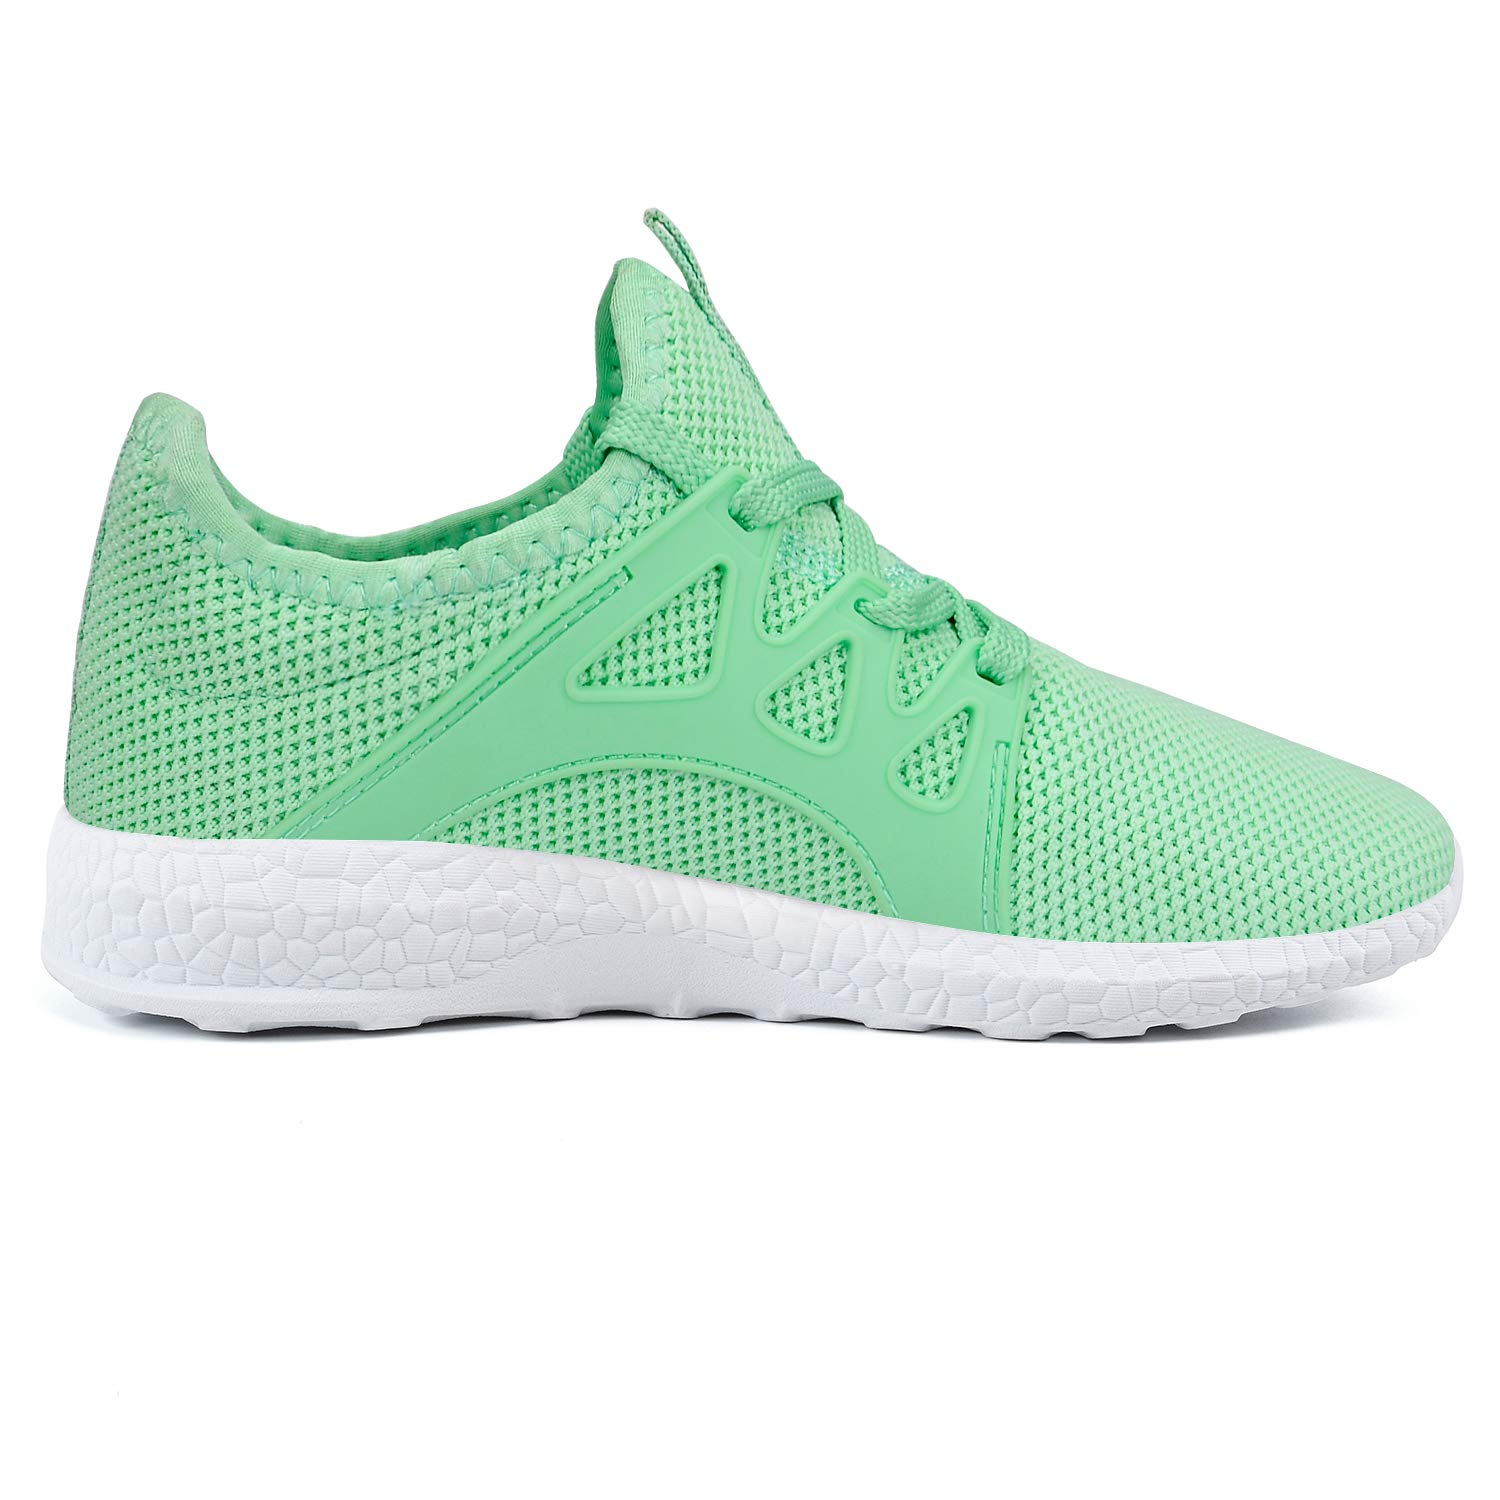 Feetmat Womens Sneakers Ultra Lightweight Breathable Mesh Walking Gym Tennis Athletic Running Shoes 9 LG